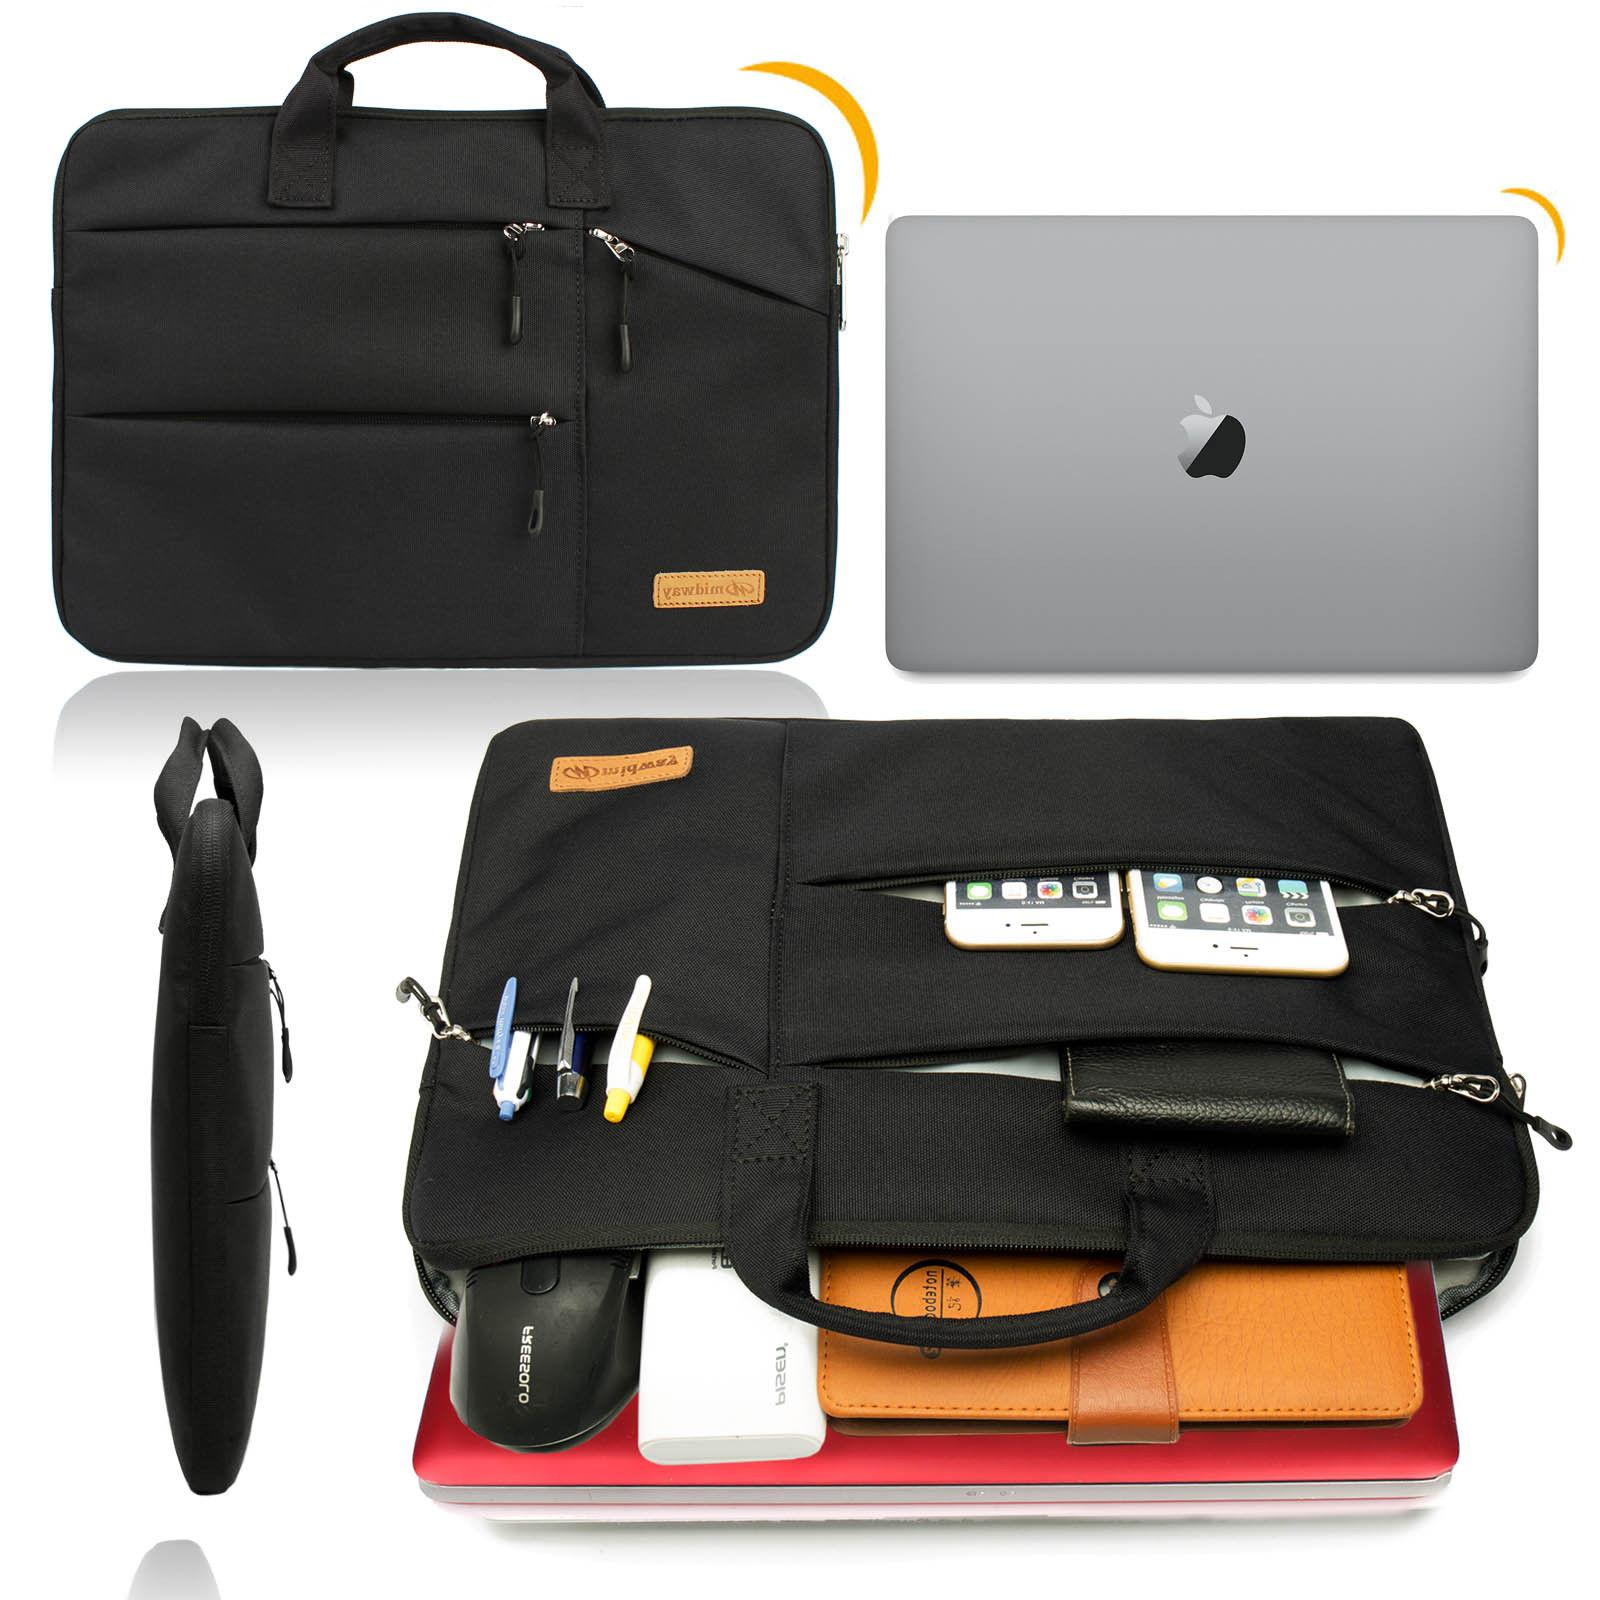 13 15 15.6 Inch Laptop Sleeve With Handle & Zipper Pocket/No